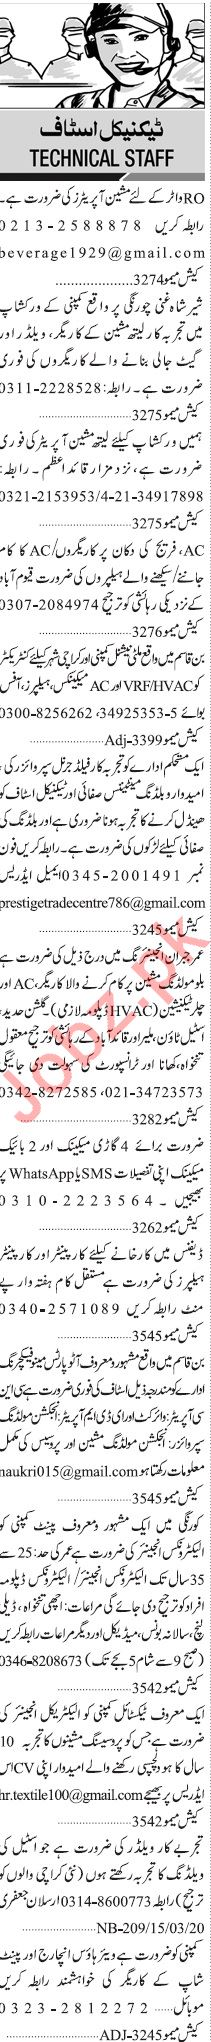 Jang Sunday Classified Ads 15th March 2020 for Technical